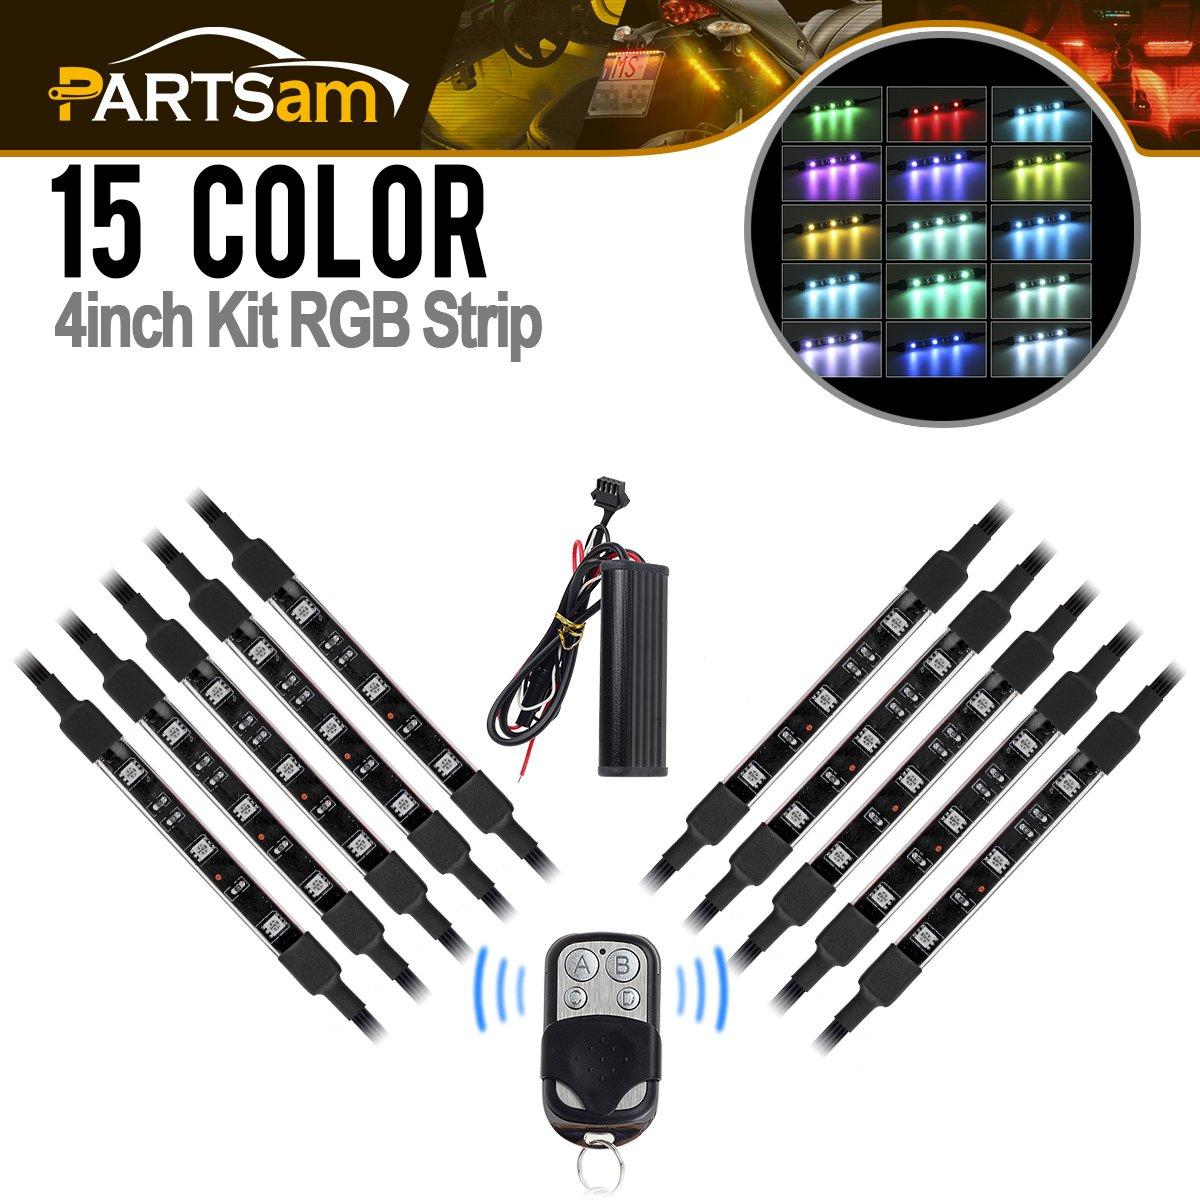 Partsam 10x 3LED RGB LED Strip Light Bar for Multicolor Accent Glow LED Neon Light Atmosphere Lights with Wireless Remote Controller for Universal Motorcycle Bike ATVs Scooters